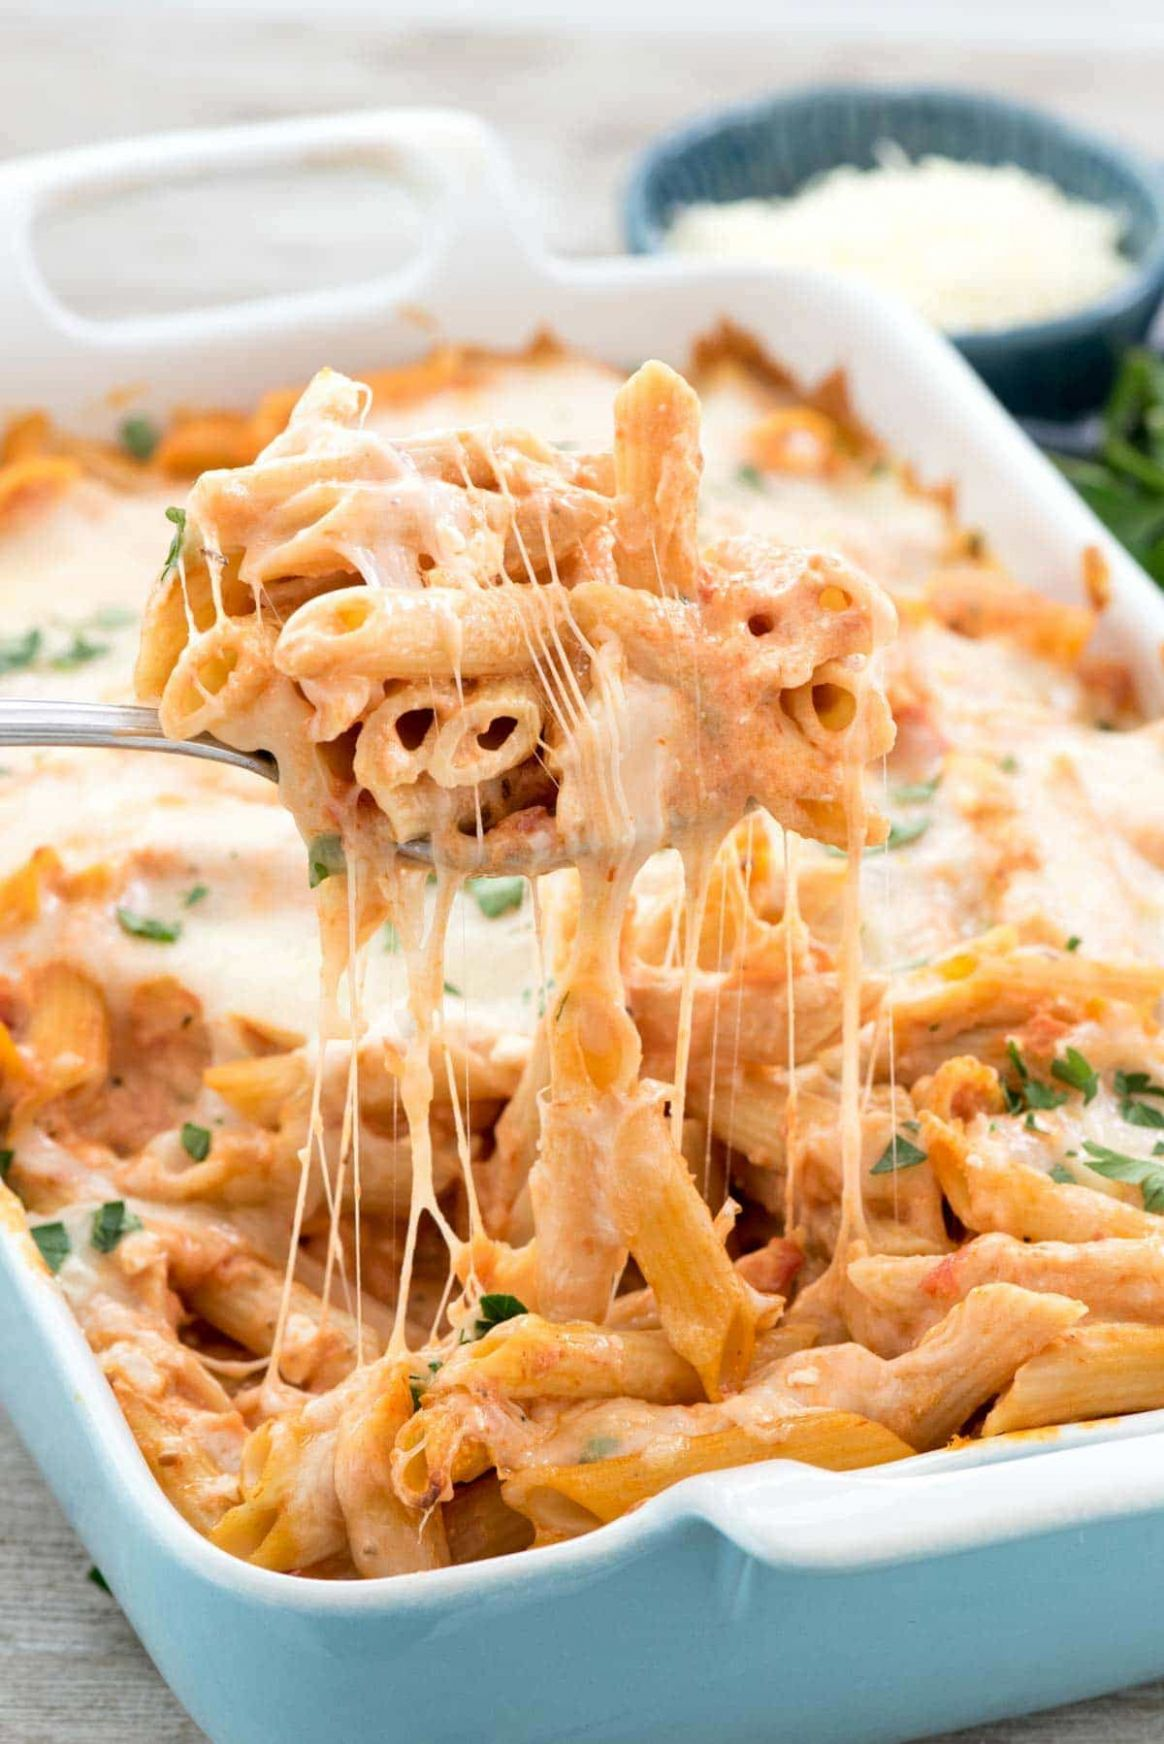 Easy Baked Penne - Recipes Pasta Bake Quick